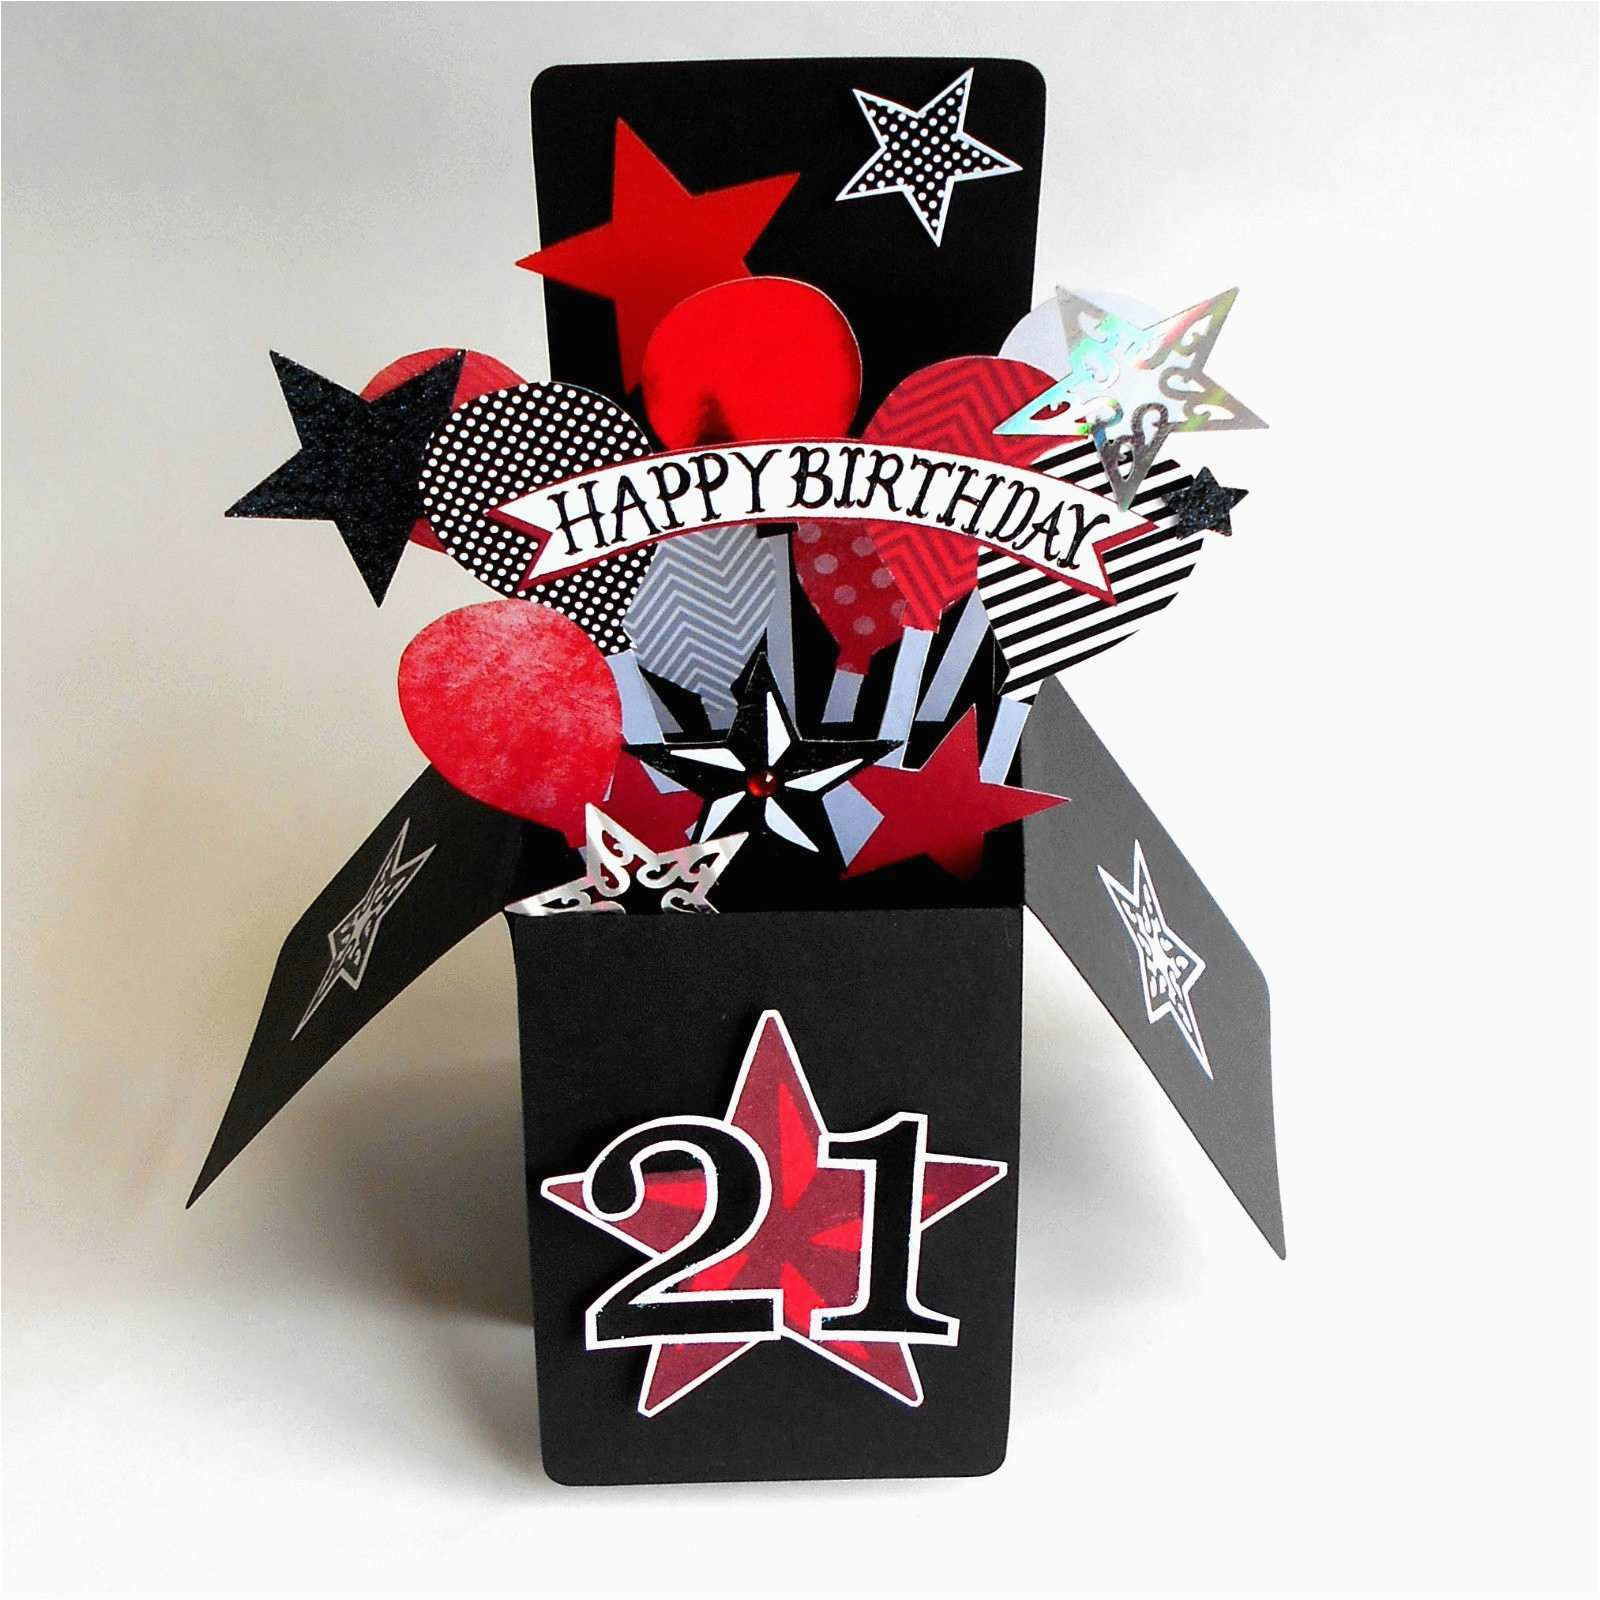 music birthday cards lovely card luxury pop box custom age tattoo children musical jingles best personalized